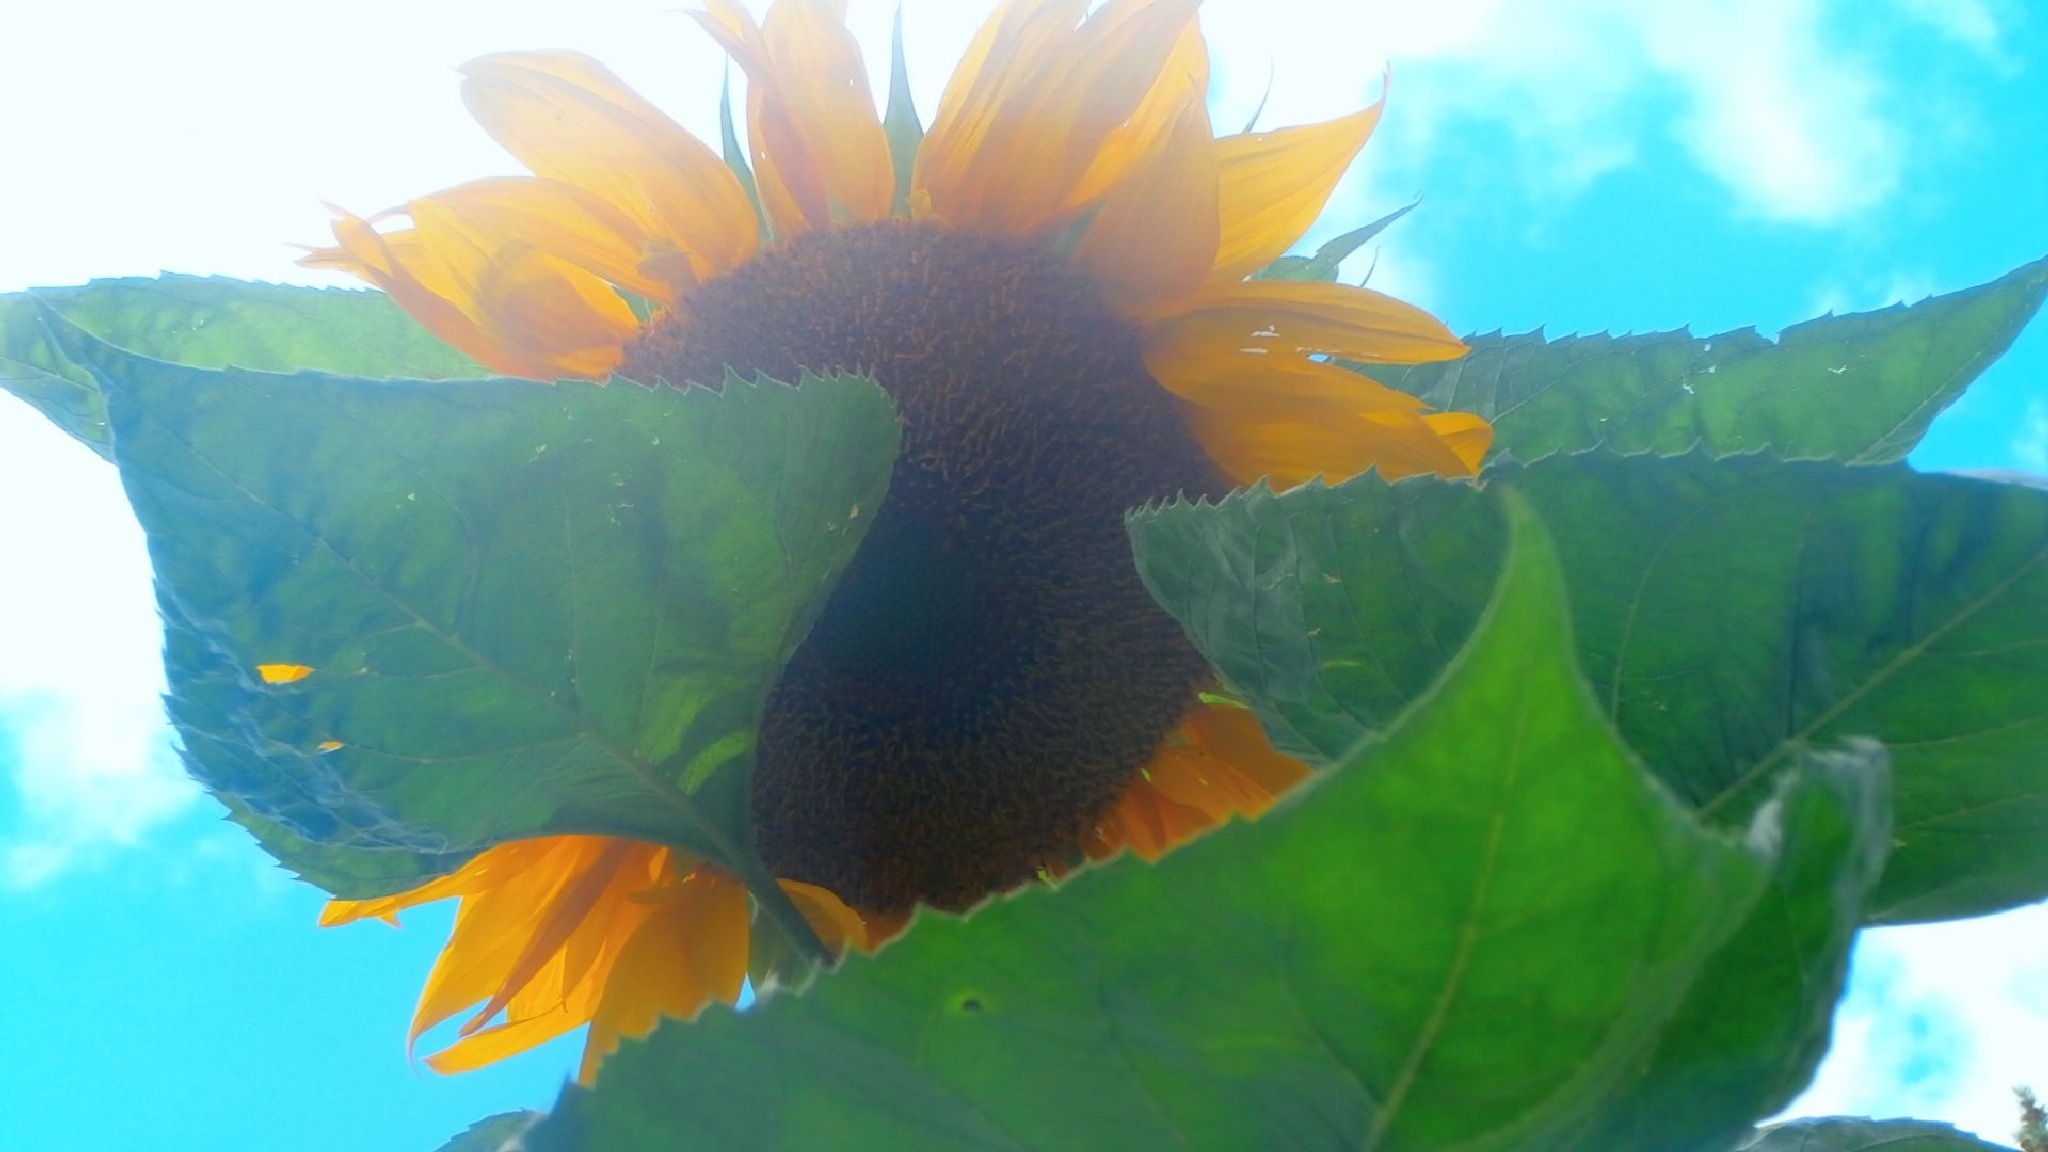 sunflower by tina.linge.3